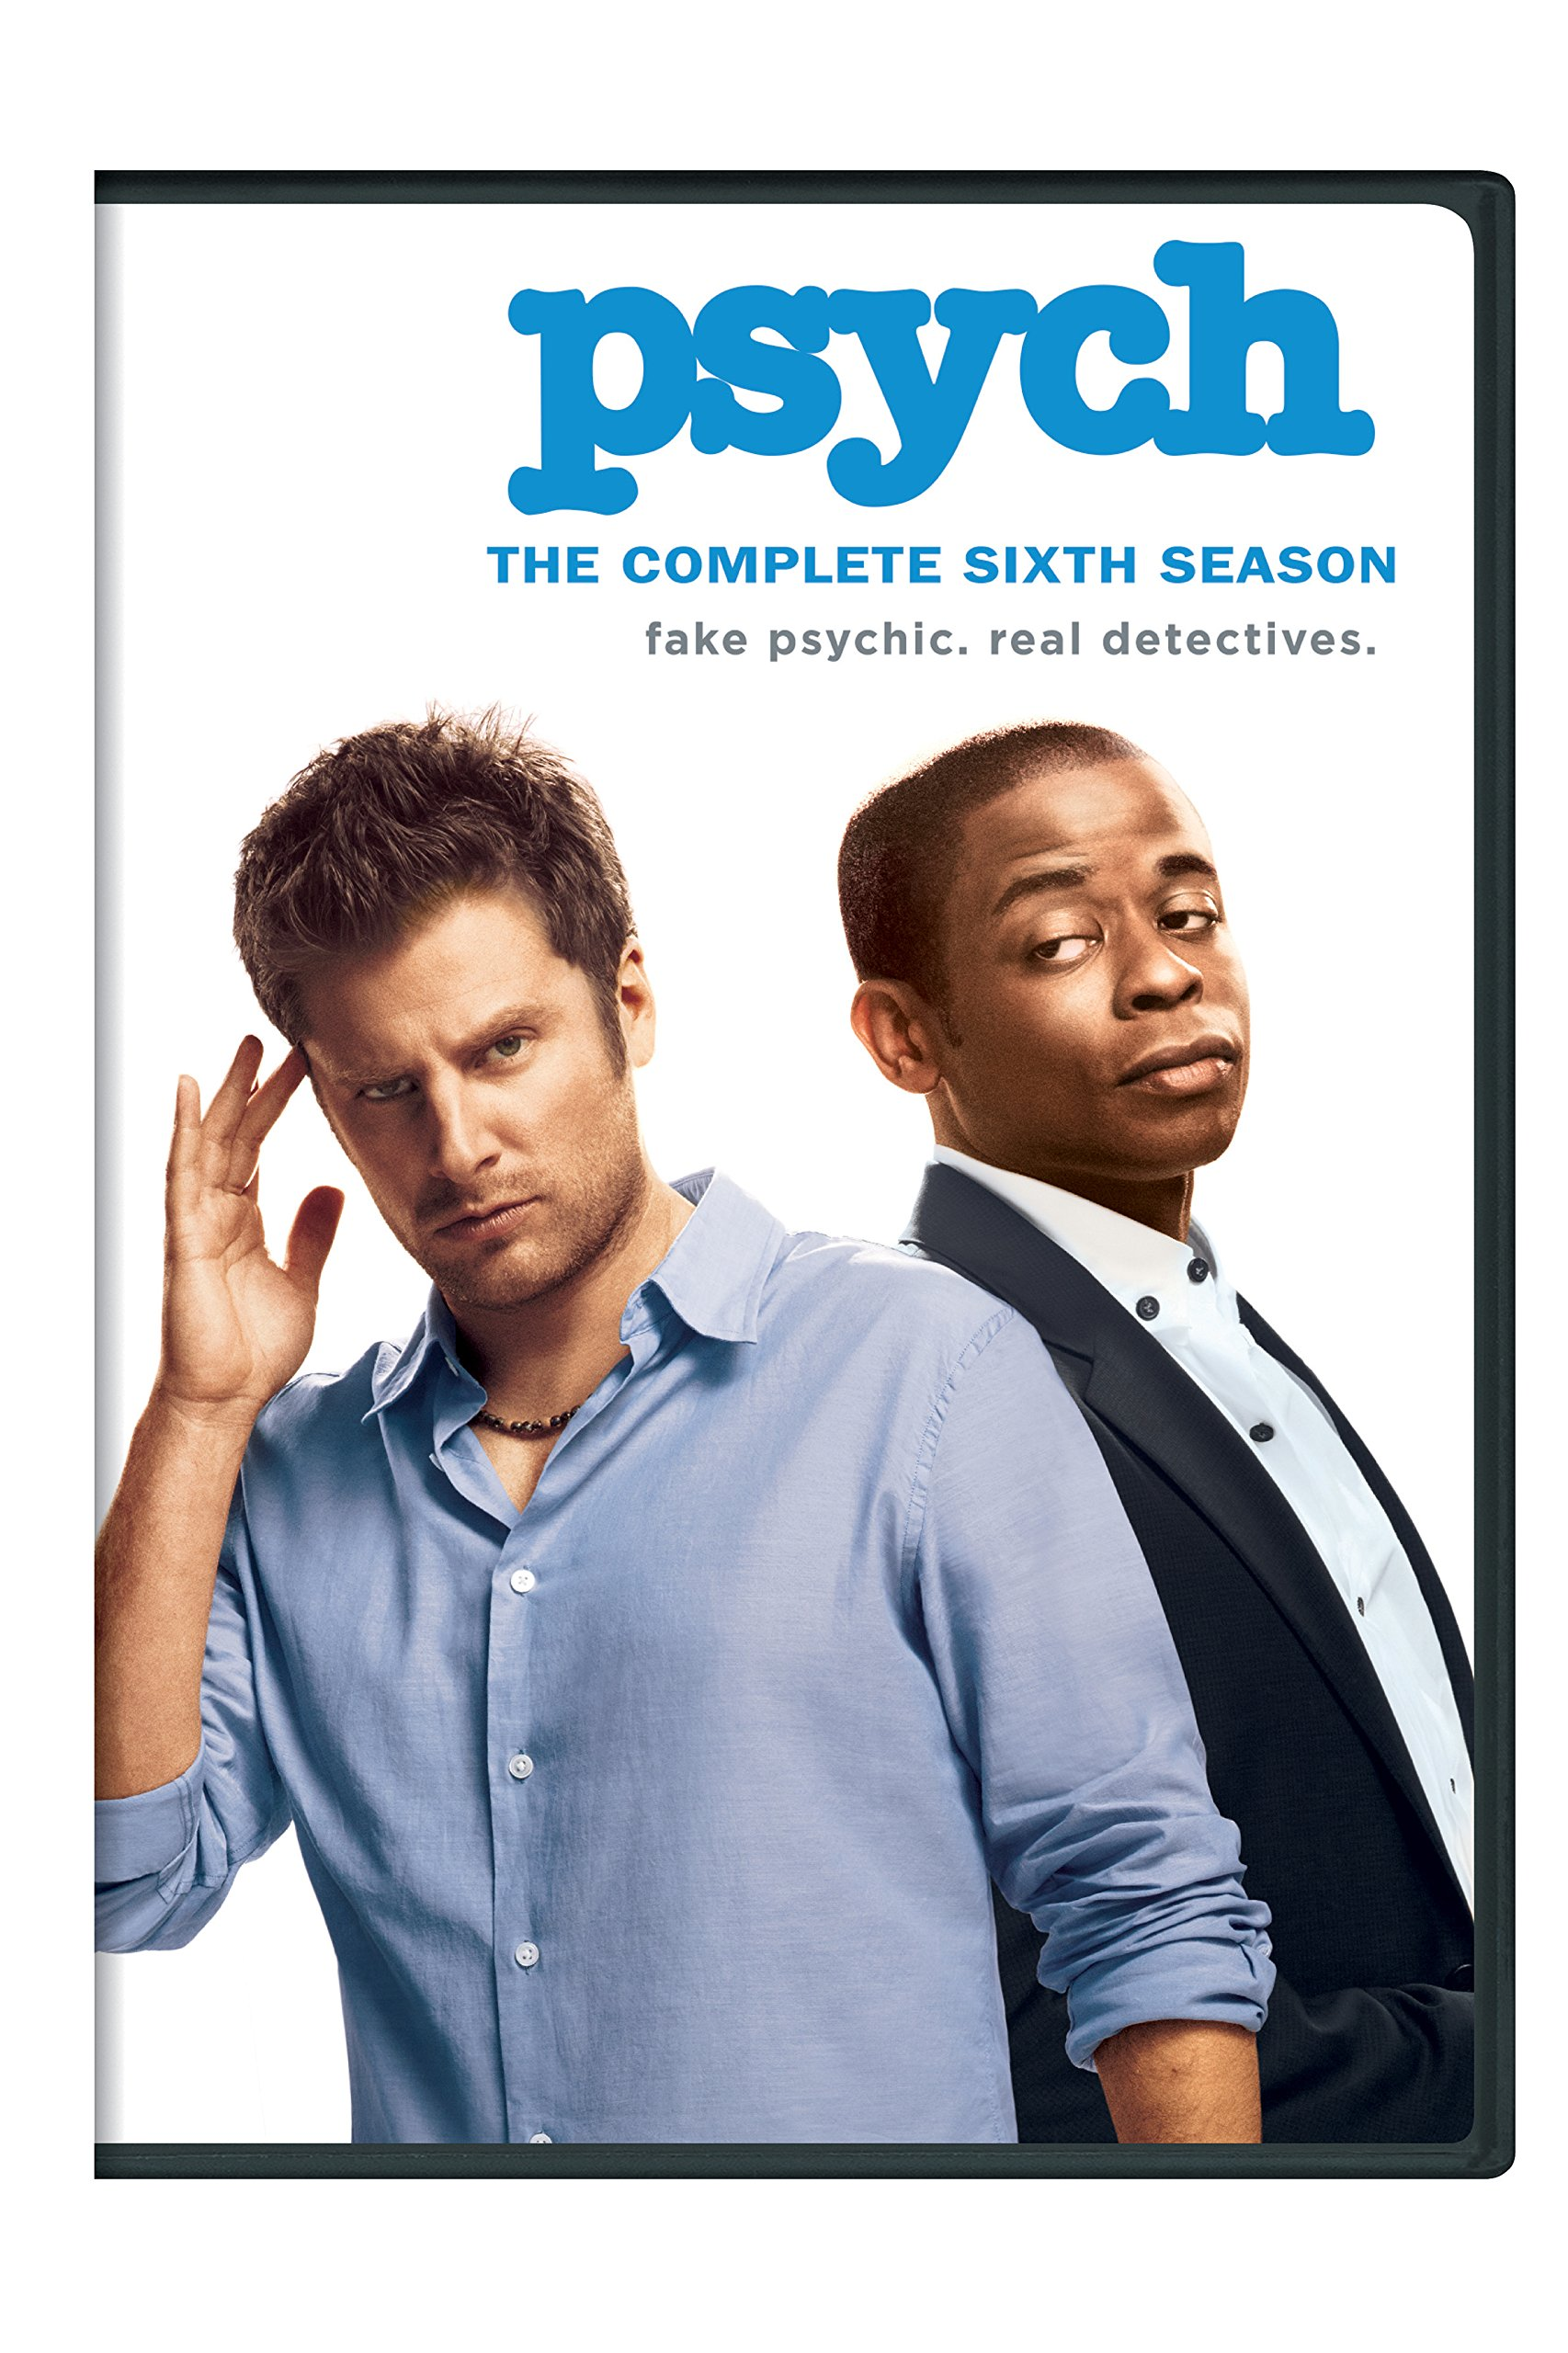 DVD : Psych: The Complete Sixth Season (Boxed Set, Snap Case, Repackaged, 4PC)